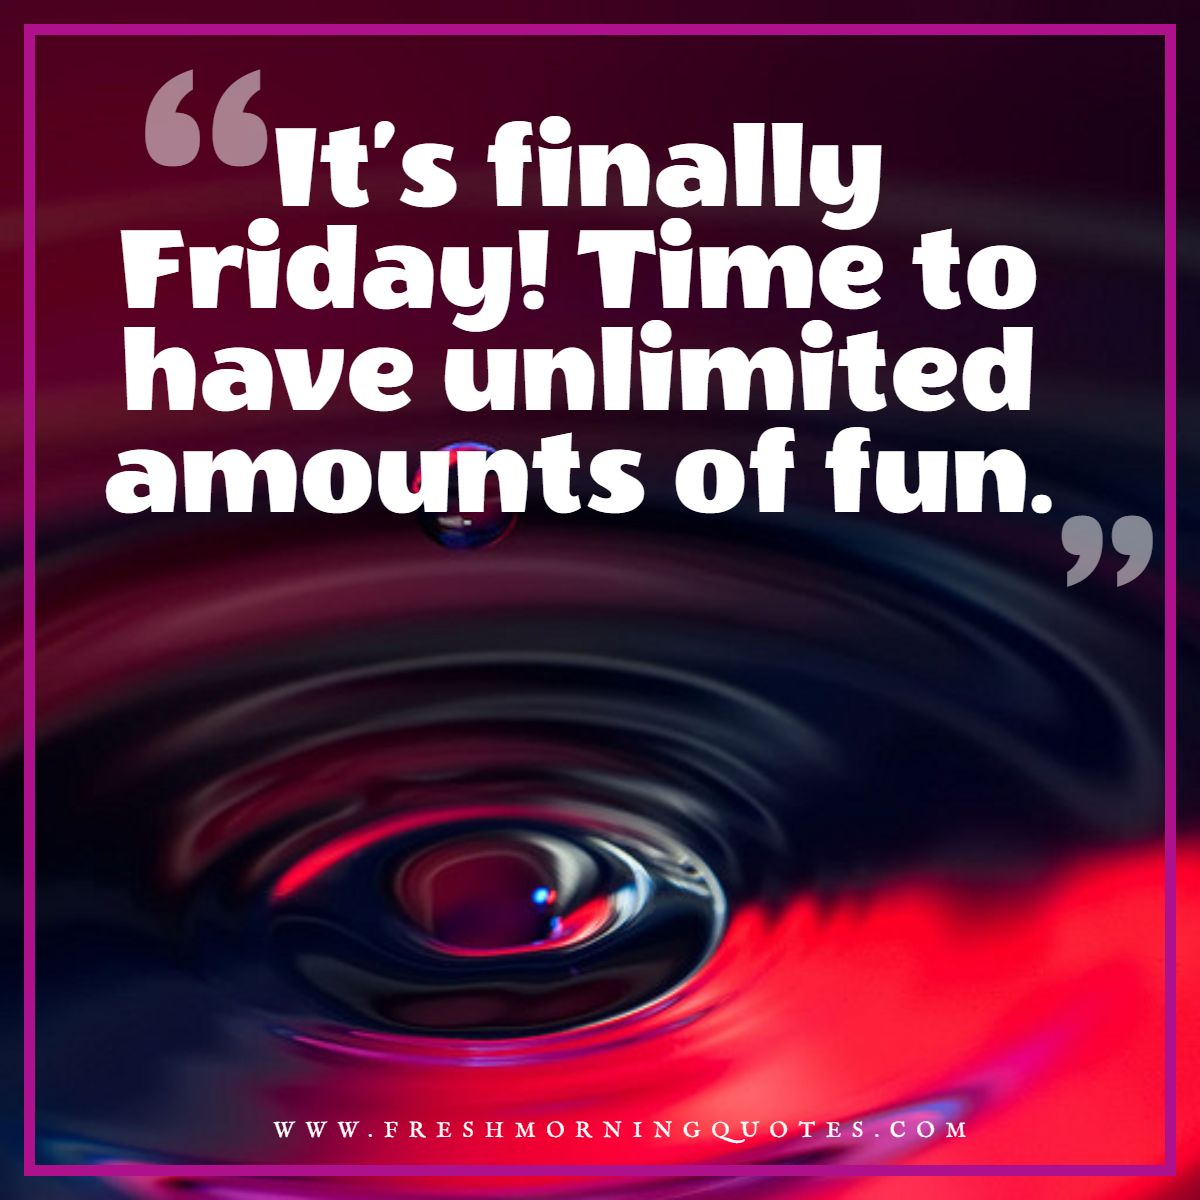 its finally Friday weekend quotes